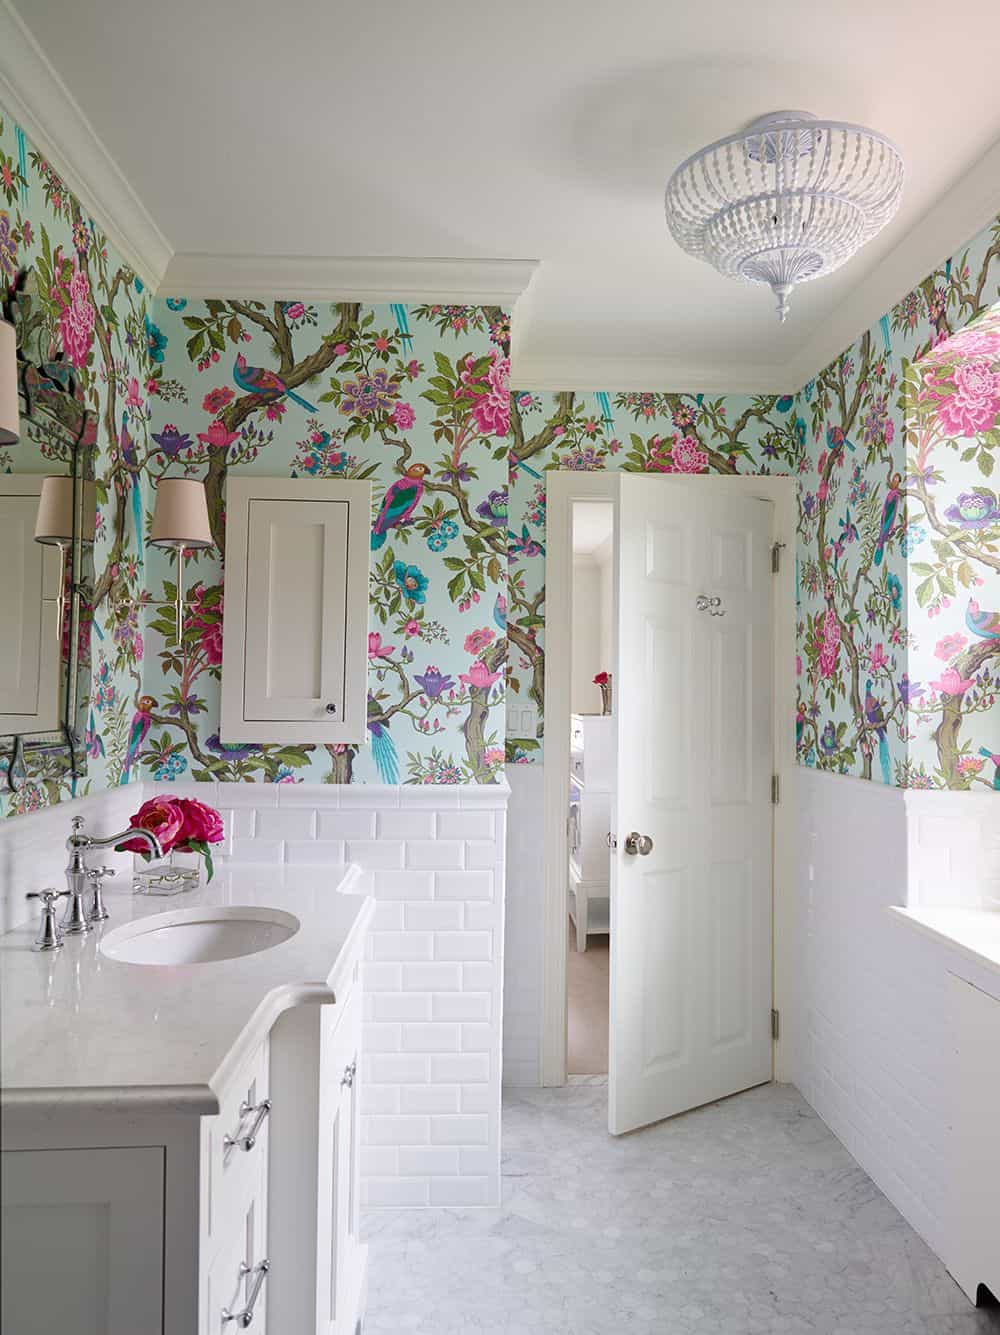 floral wallpaper in the vathroom